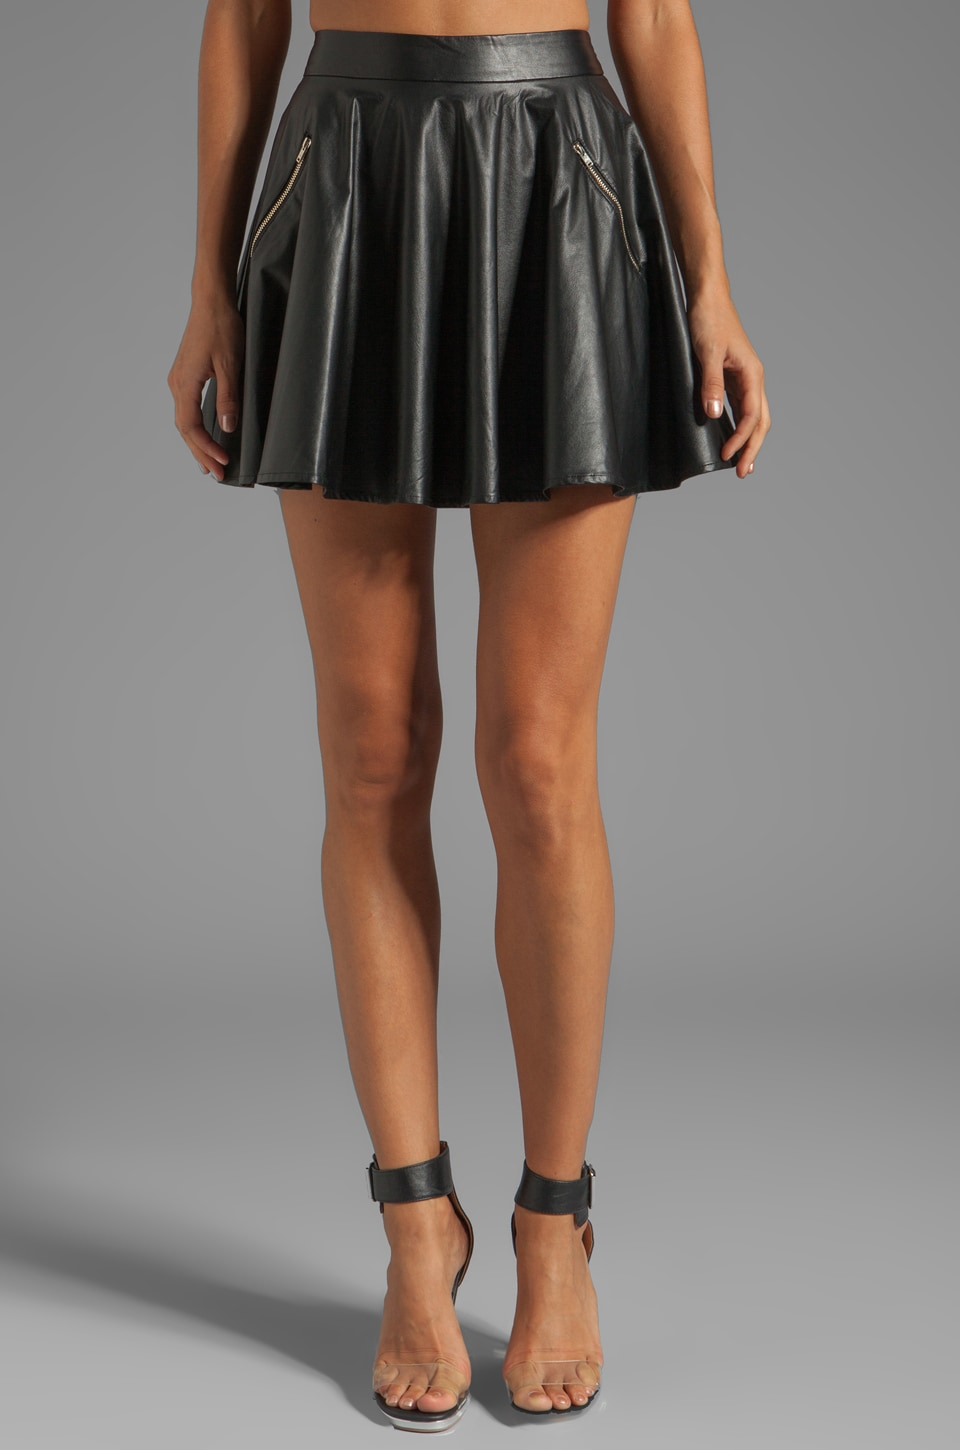 Line & Dot Faux Leather Circle Skirt in Black | REVOLVE